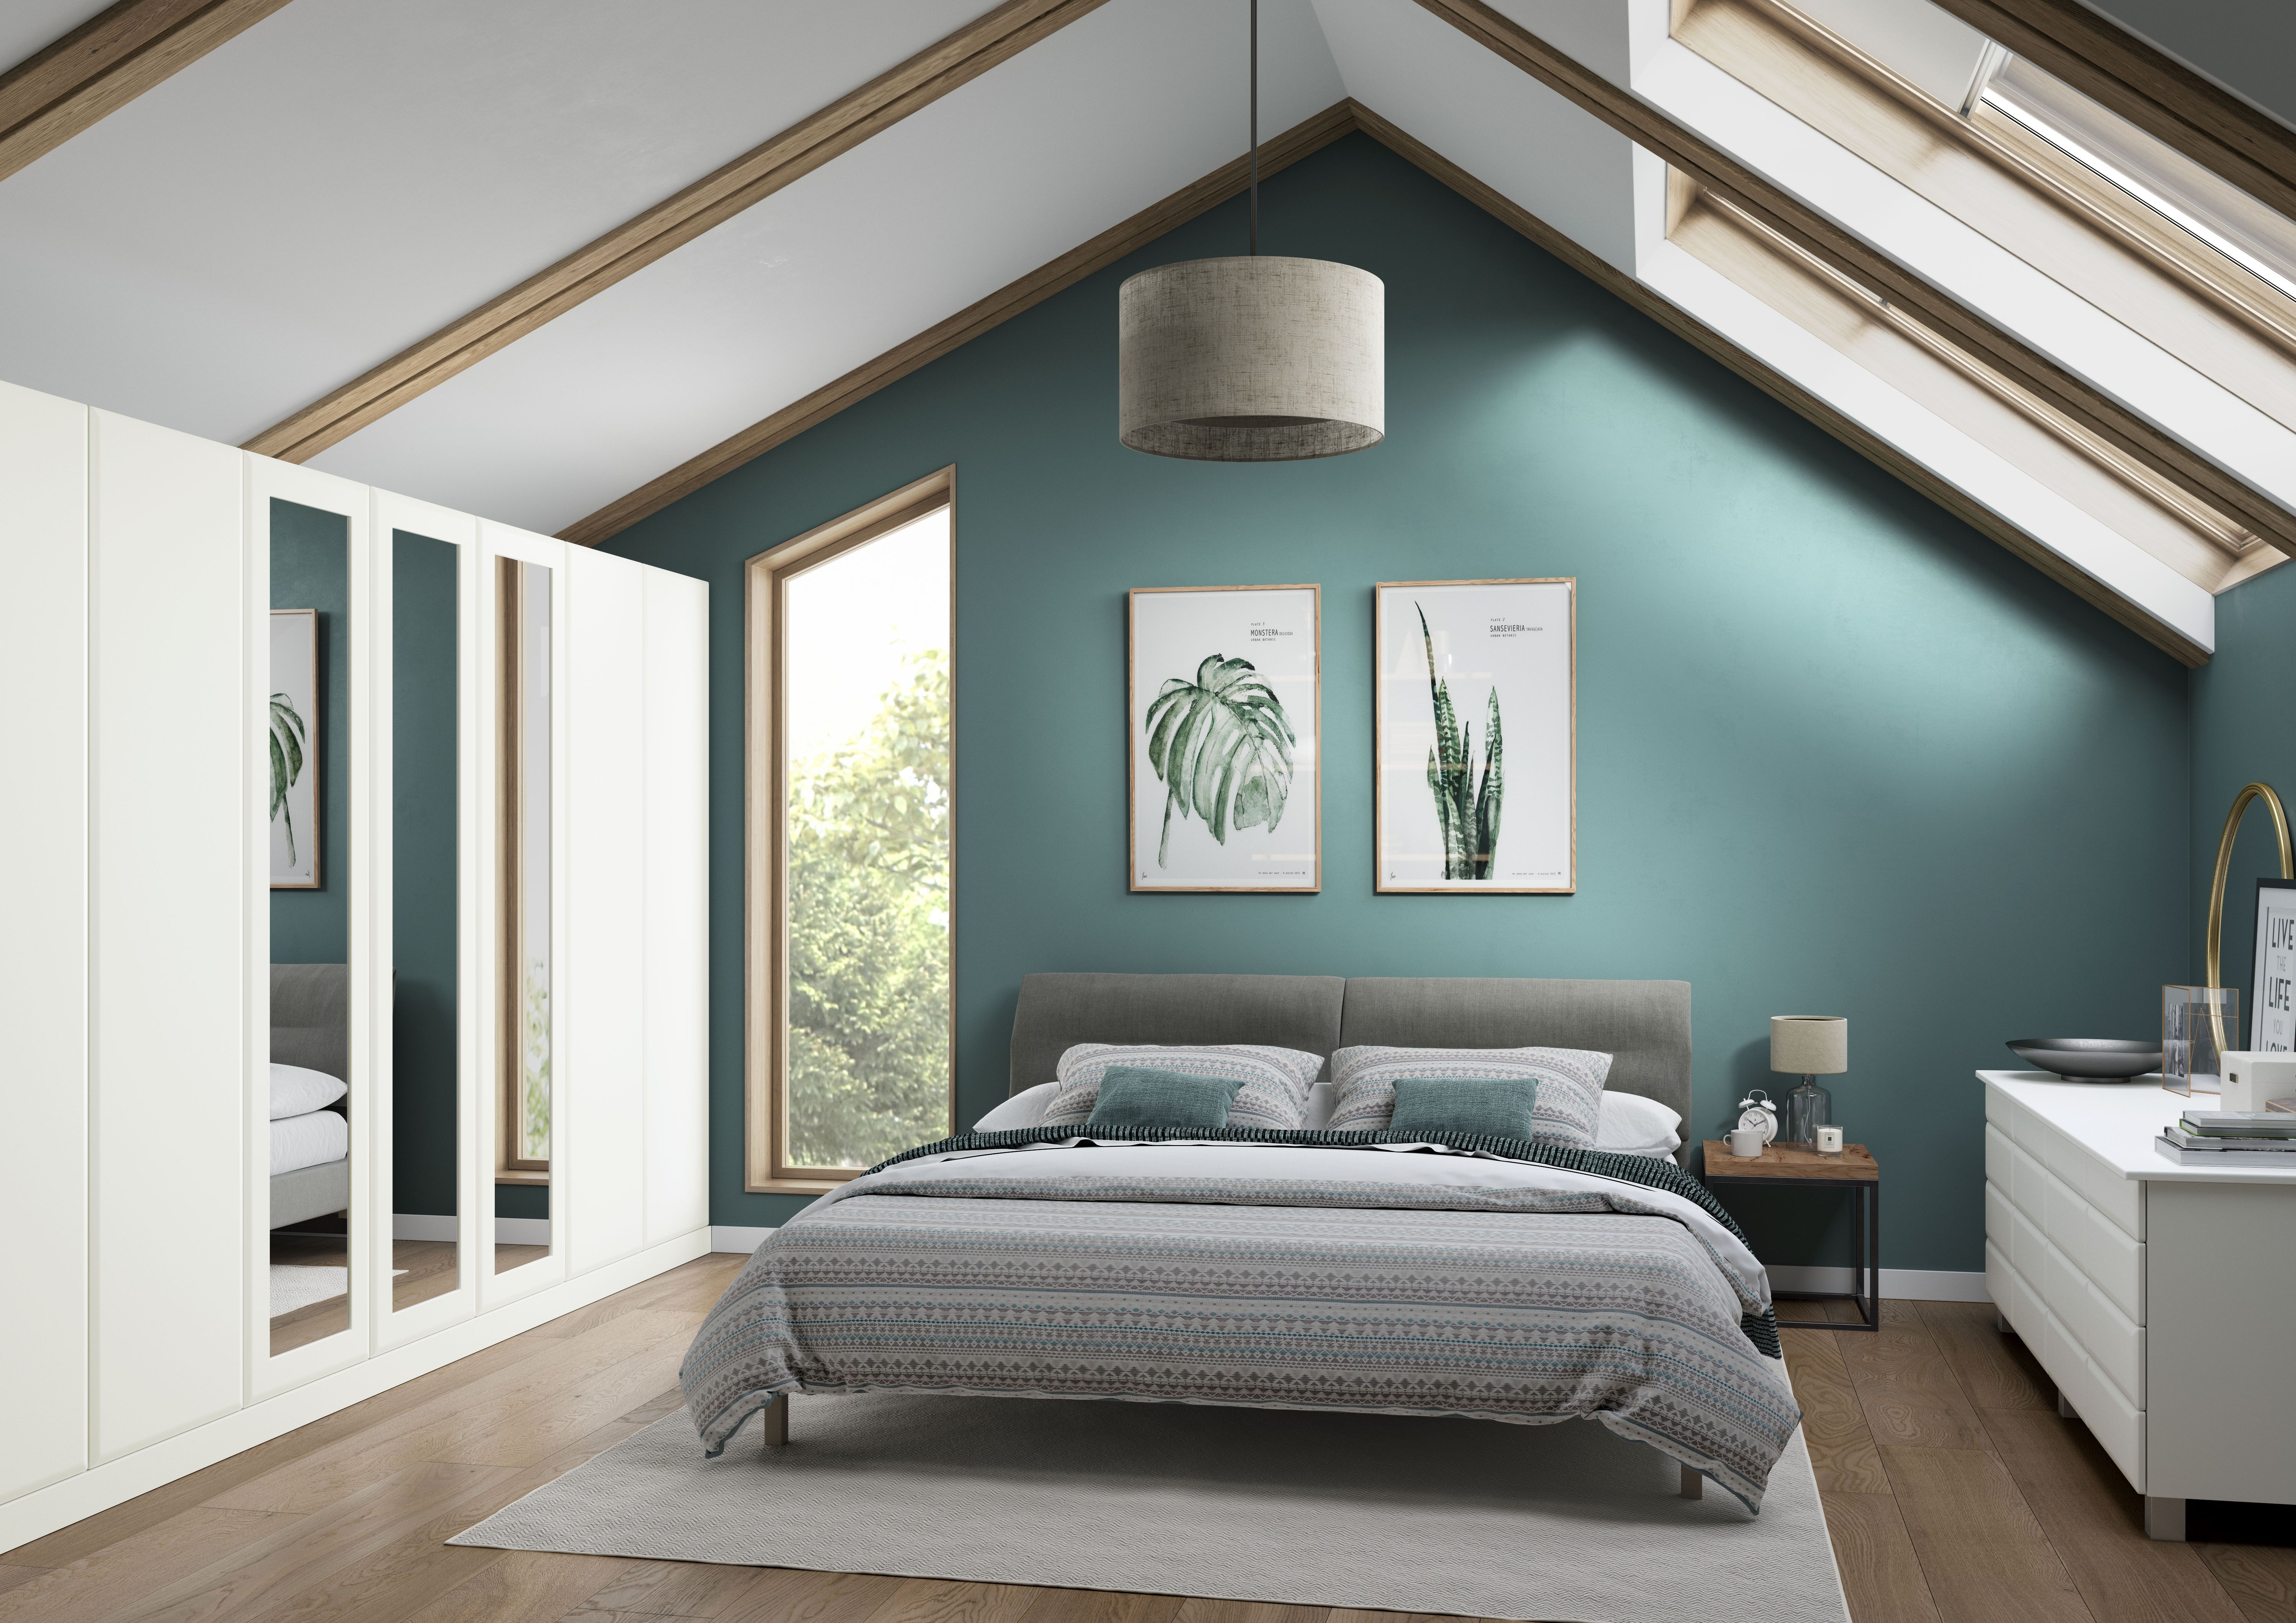 Valencia White Fitted bedrooms, Luxurious bedrooms